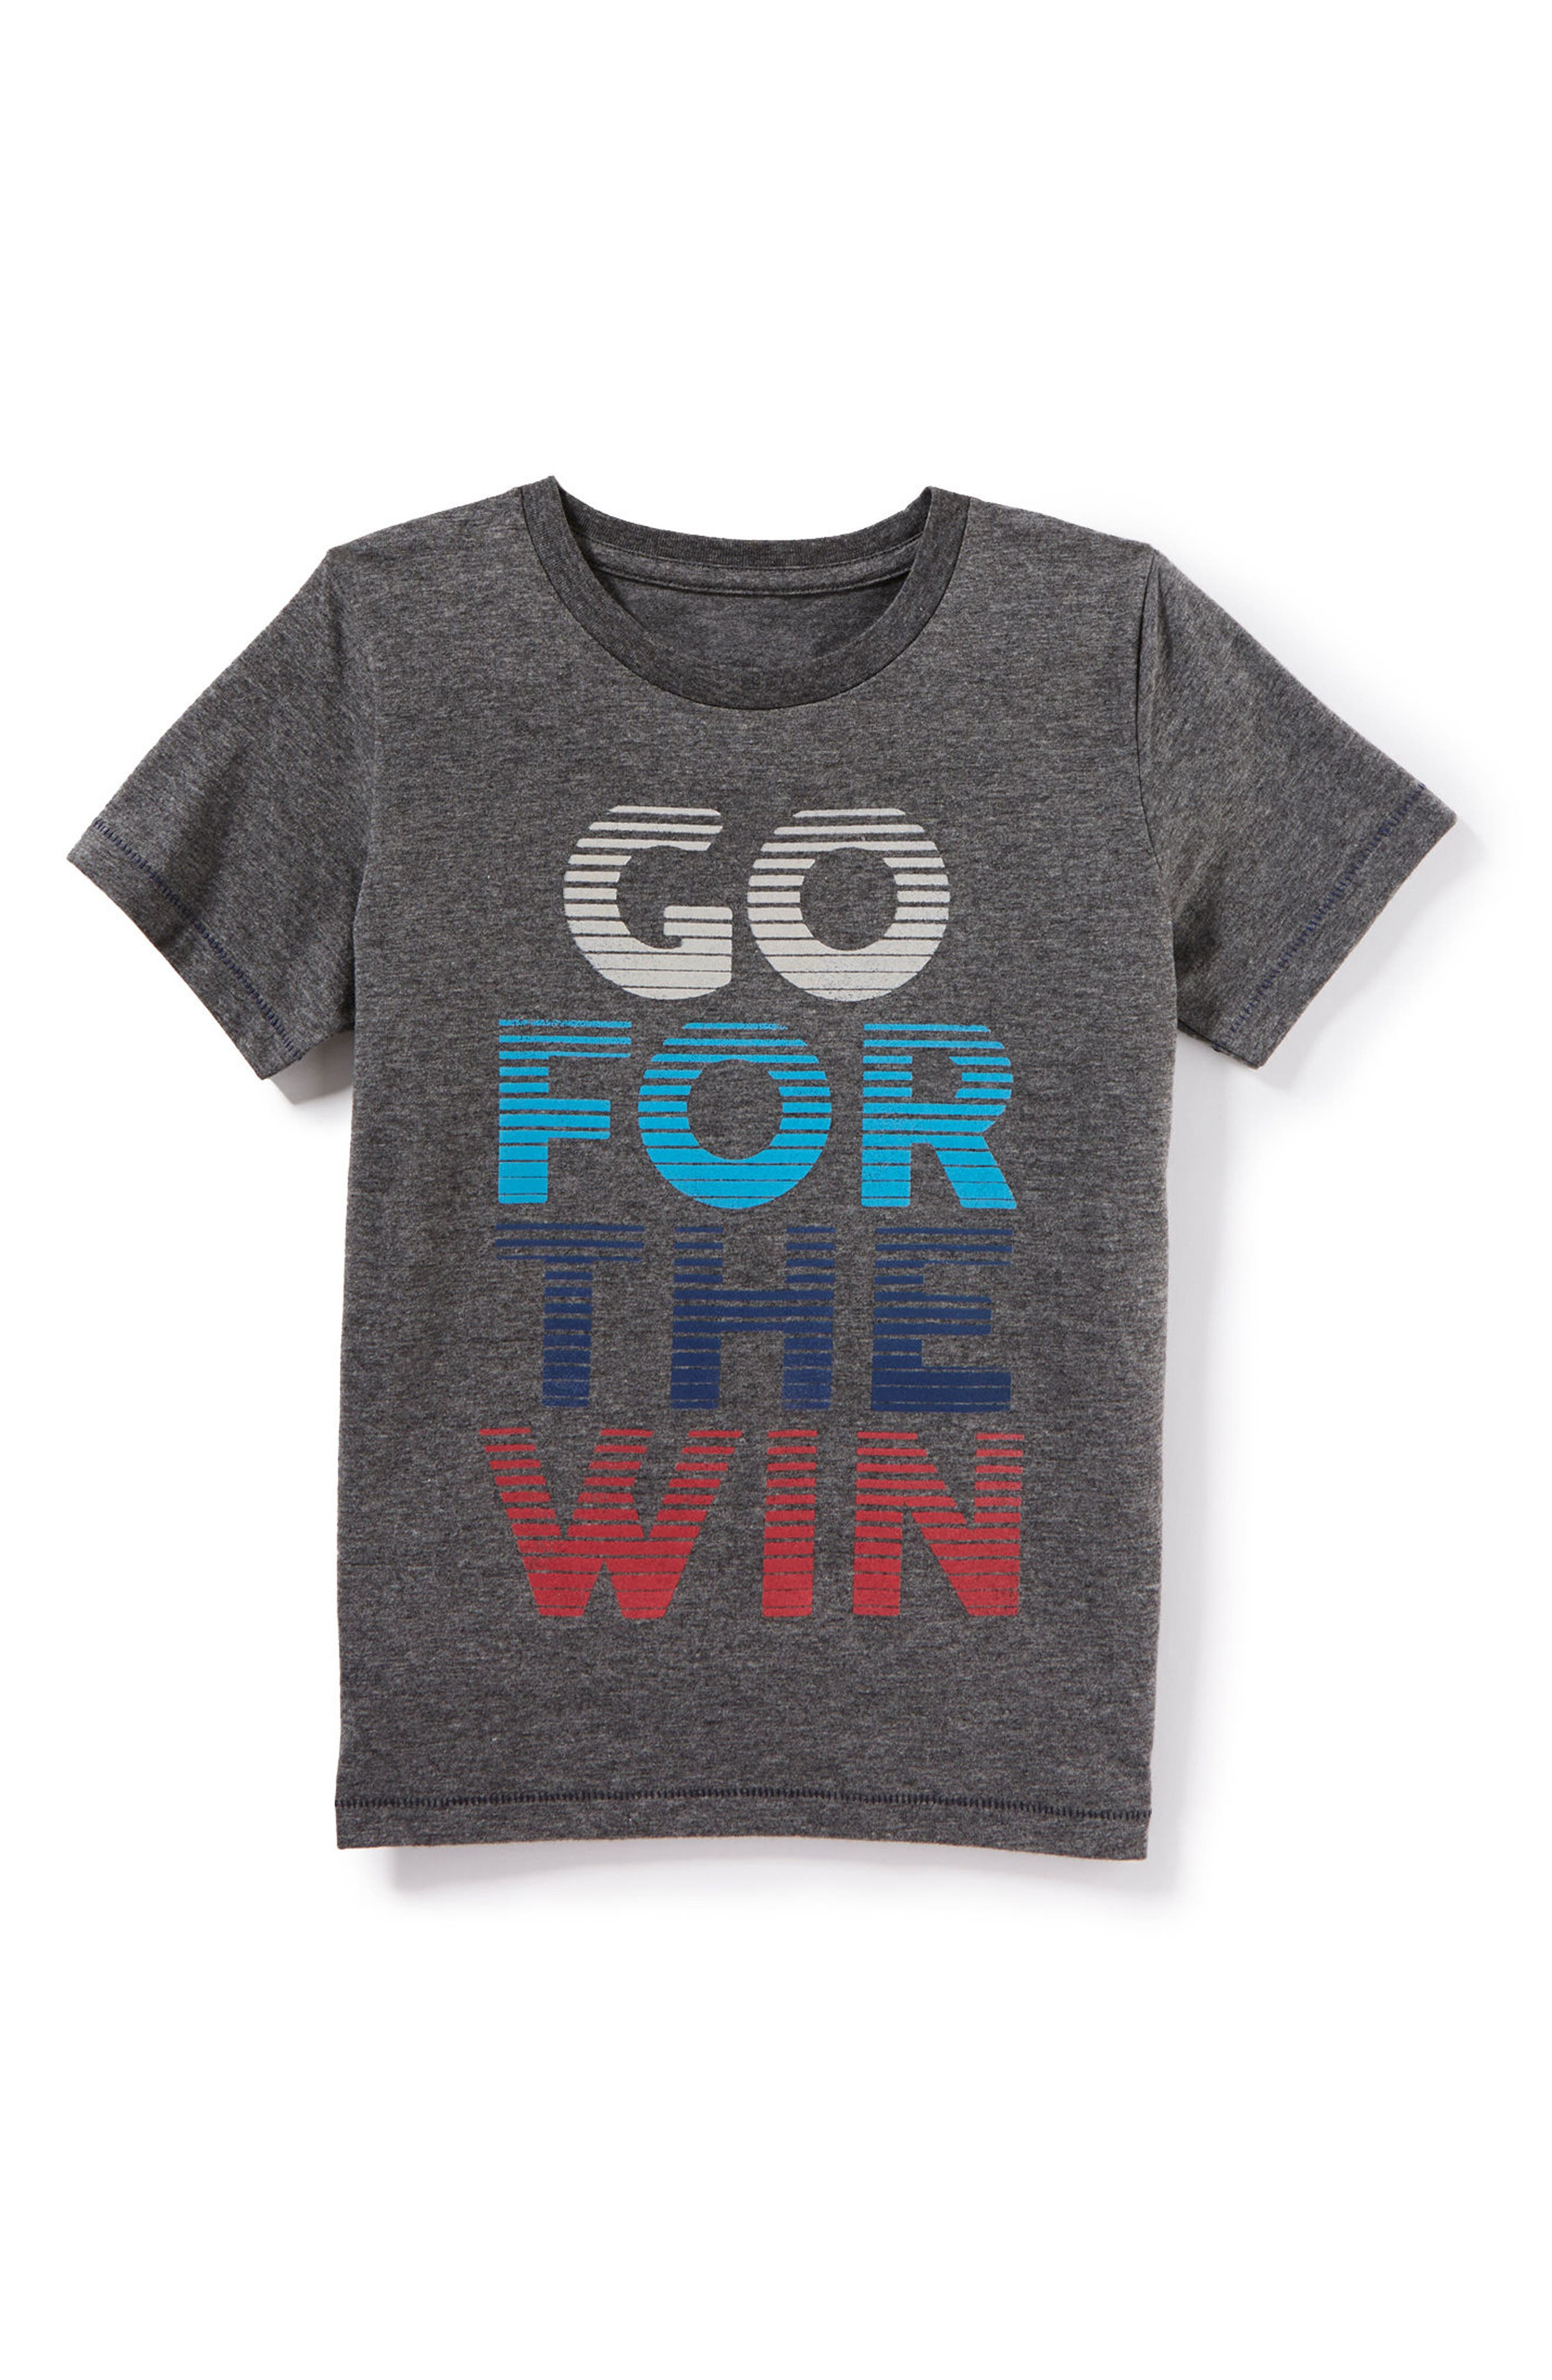 Go for the Win Graphic T-Shirt,                             Main thumbnail 1, color,                             031